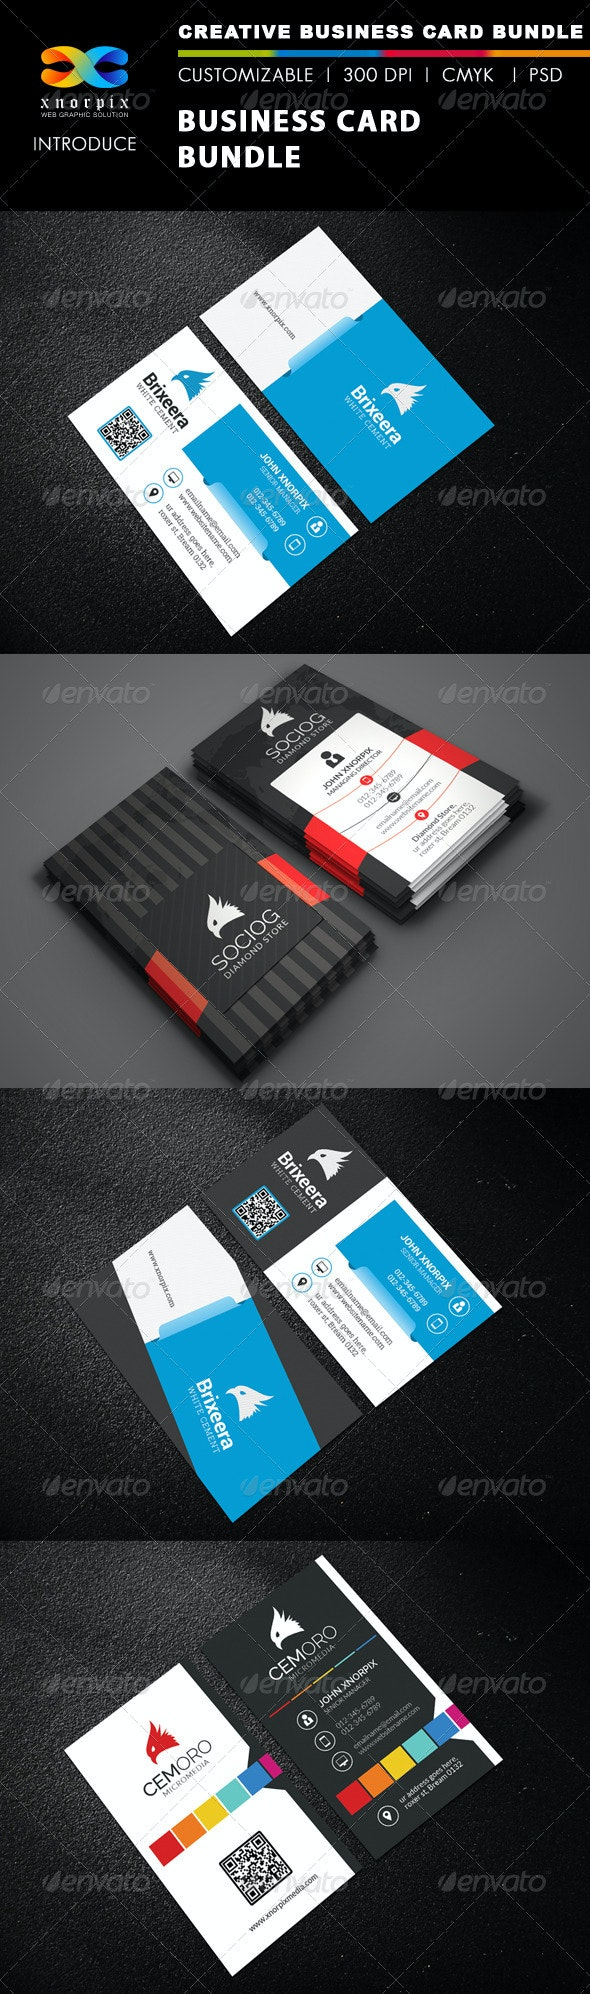 Business Card Bundle 3 in 1-Vol 41 - Corporate Business Cards